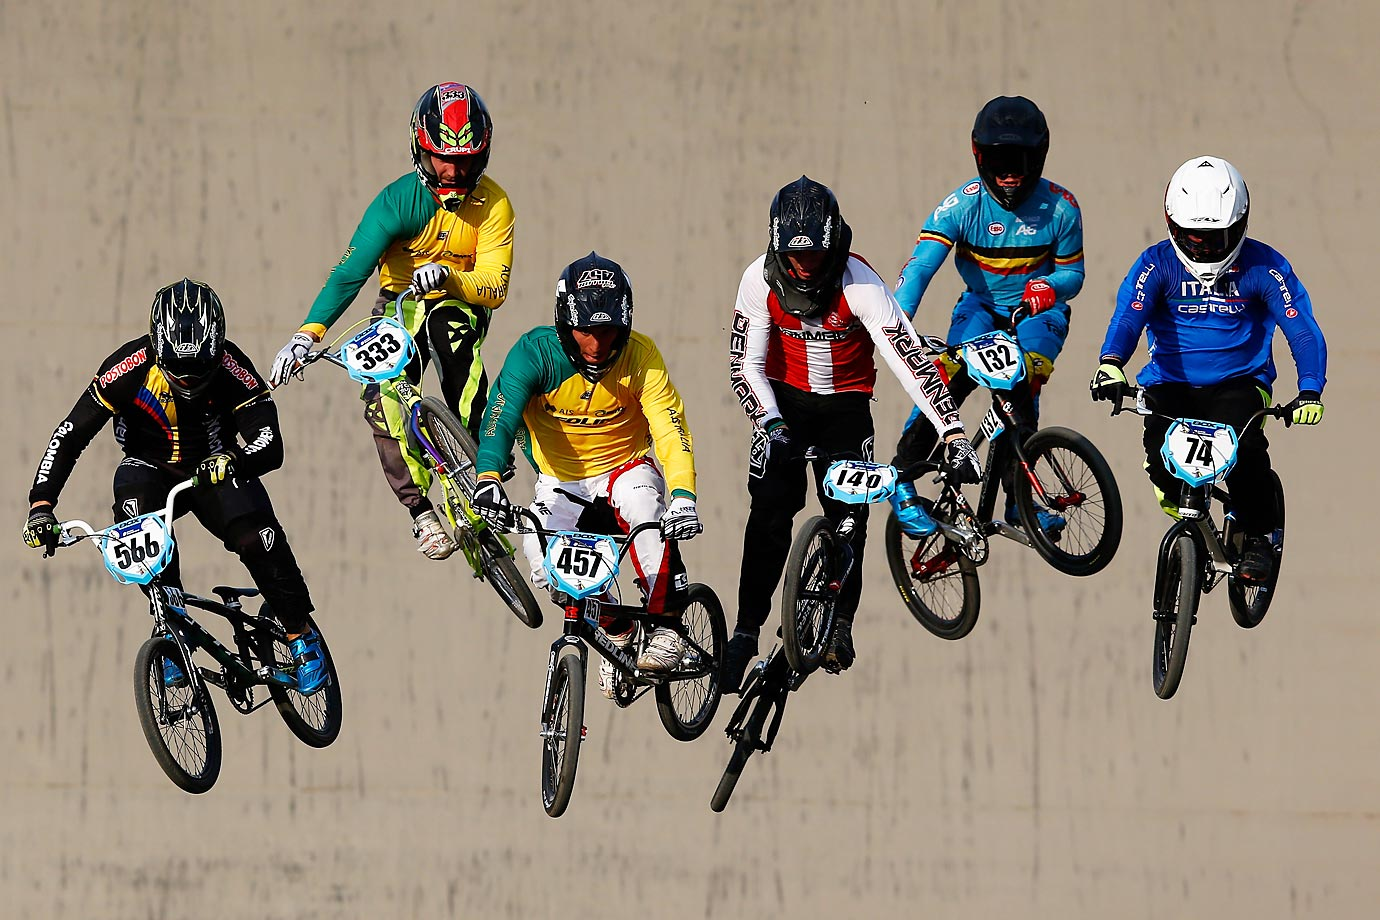 Riders during a practice at the UCI BMX World Championships in Zolder, Belgium.